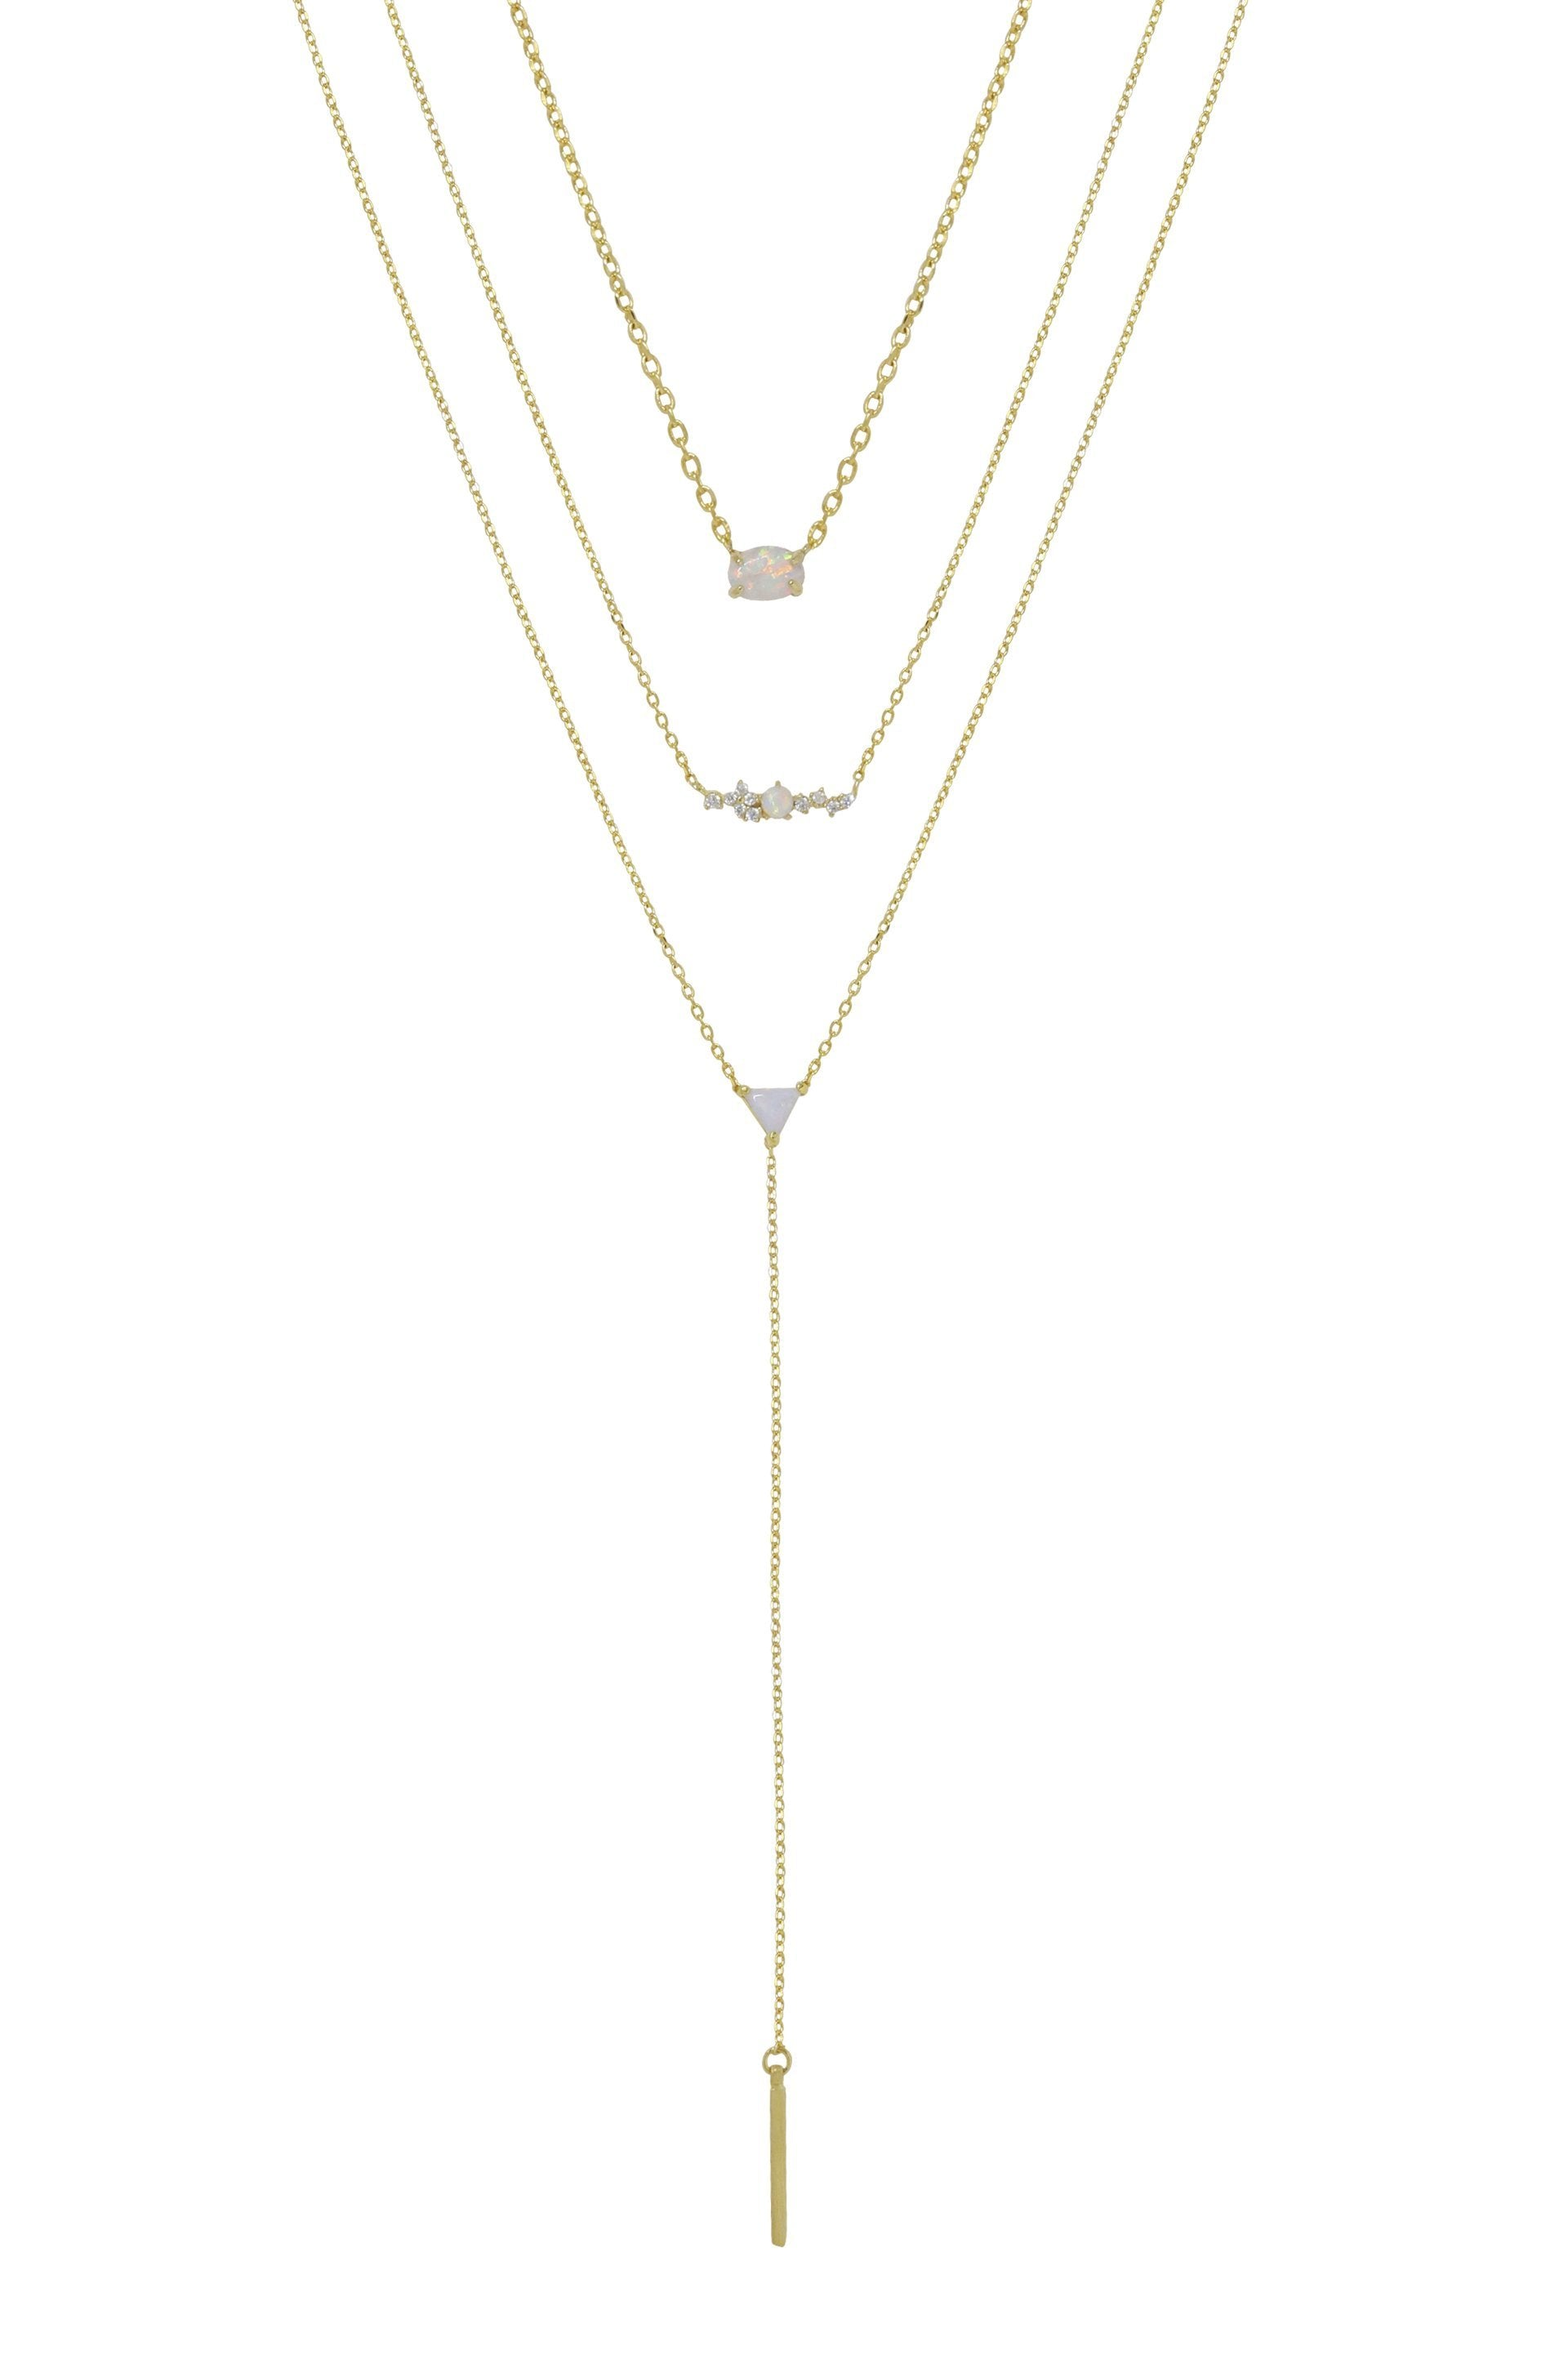 3 pc Layered Opal 18kt Gold Plated Lariat Necklace